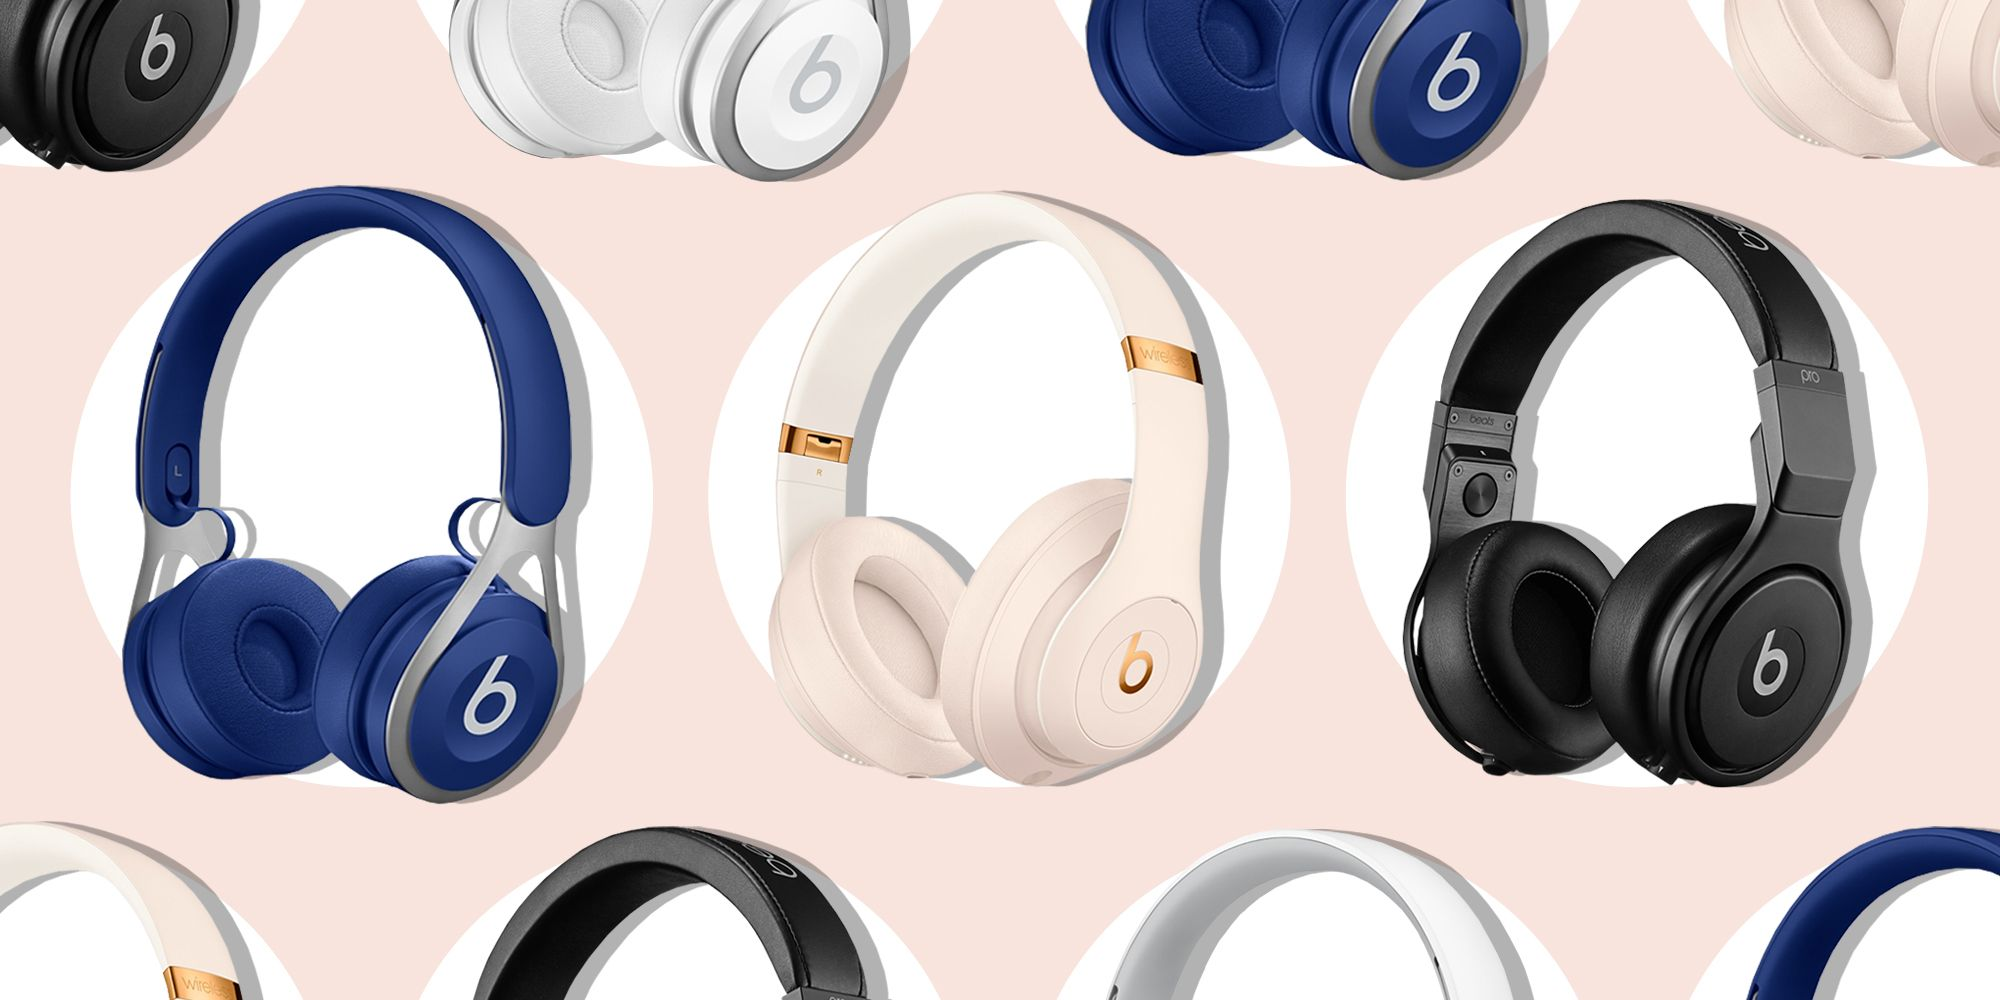 The Best Beats Headphones of 2018 - Which Beats Headphones to Buy 0ace70cb4